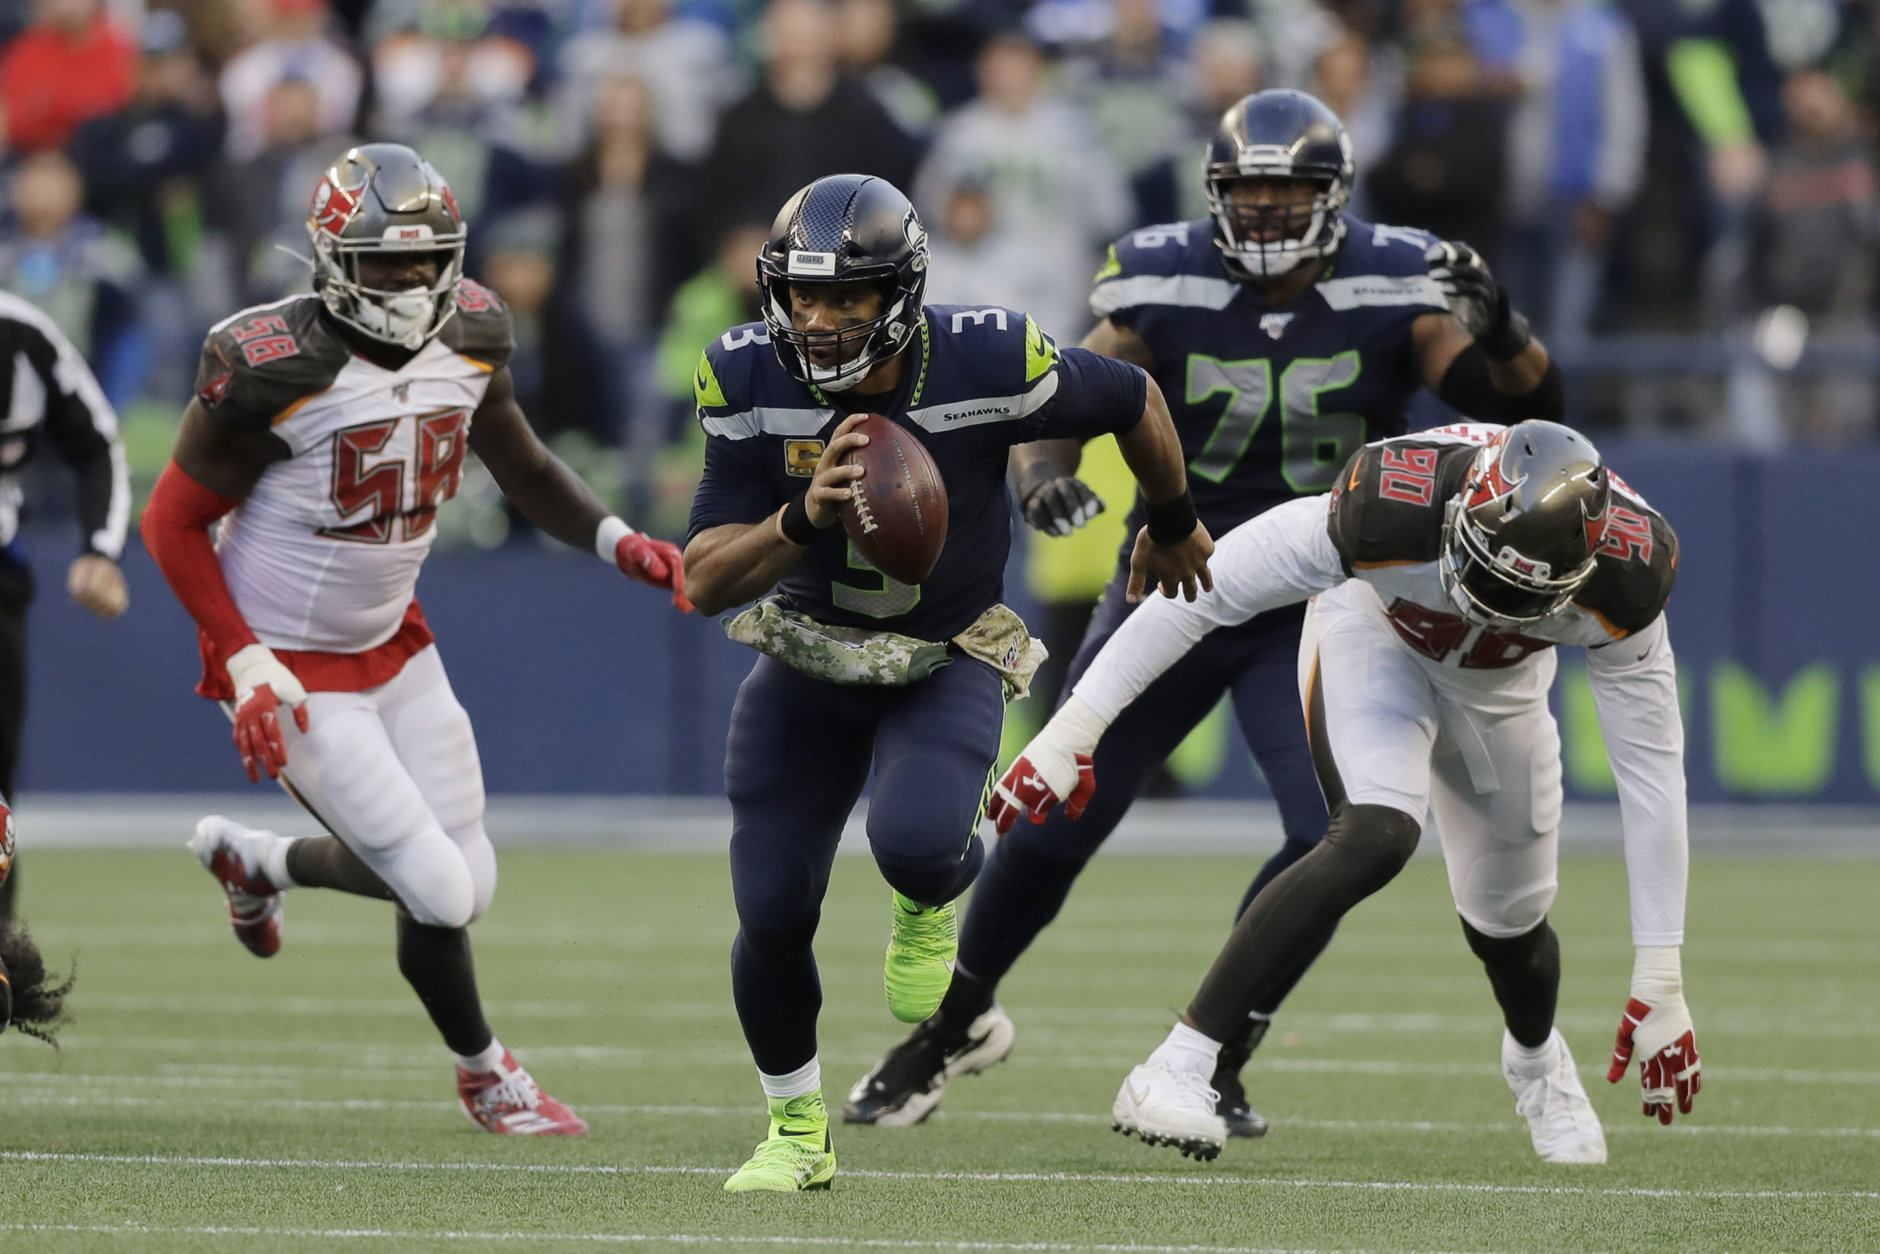 """<p><b><i>Buccaneers 34</i></b><br /> <b><i>Seahawks 40 (OT)</i></b></p> <p>Jameis Winston had a pretty good game but could only sit and watch Russell Wilson complete a thrilling comeback to cement his MVP status, while Jameis is only famous for completing <a href=""""https://profootballtalk.nbcsports.com/2019/10/27/jameis-winston-makes-the-latest-non-guarantee-guarantee/"""">the failed non-guaranteed guarantee trifecta</a>. Monday Night Football finally gets a gem when the Seahawks play the undefeated 49ers next week.</p>"""